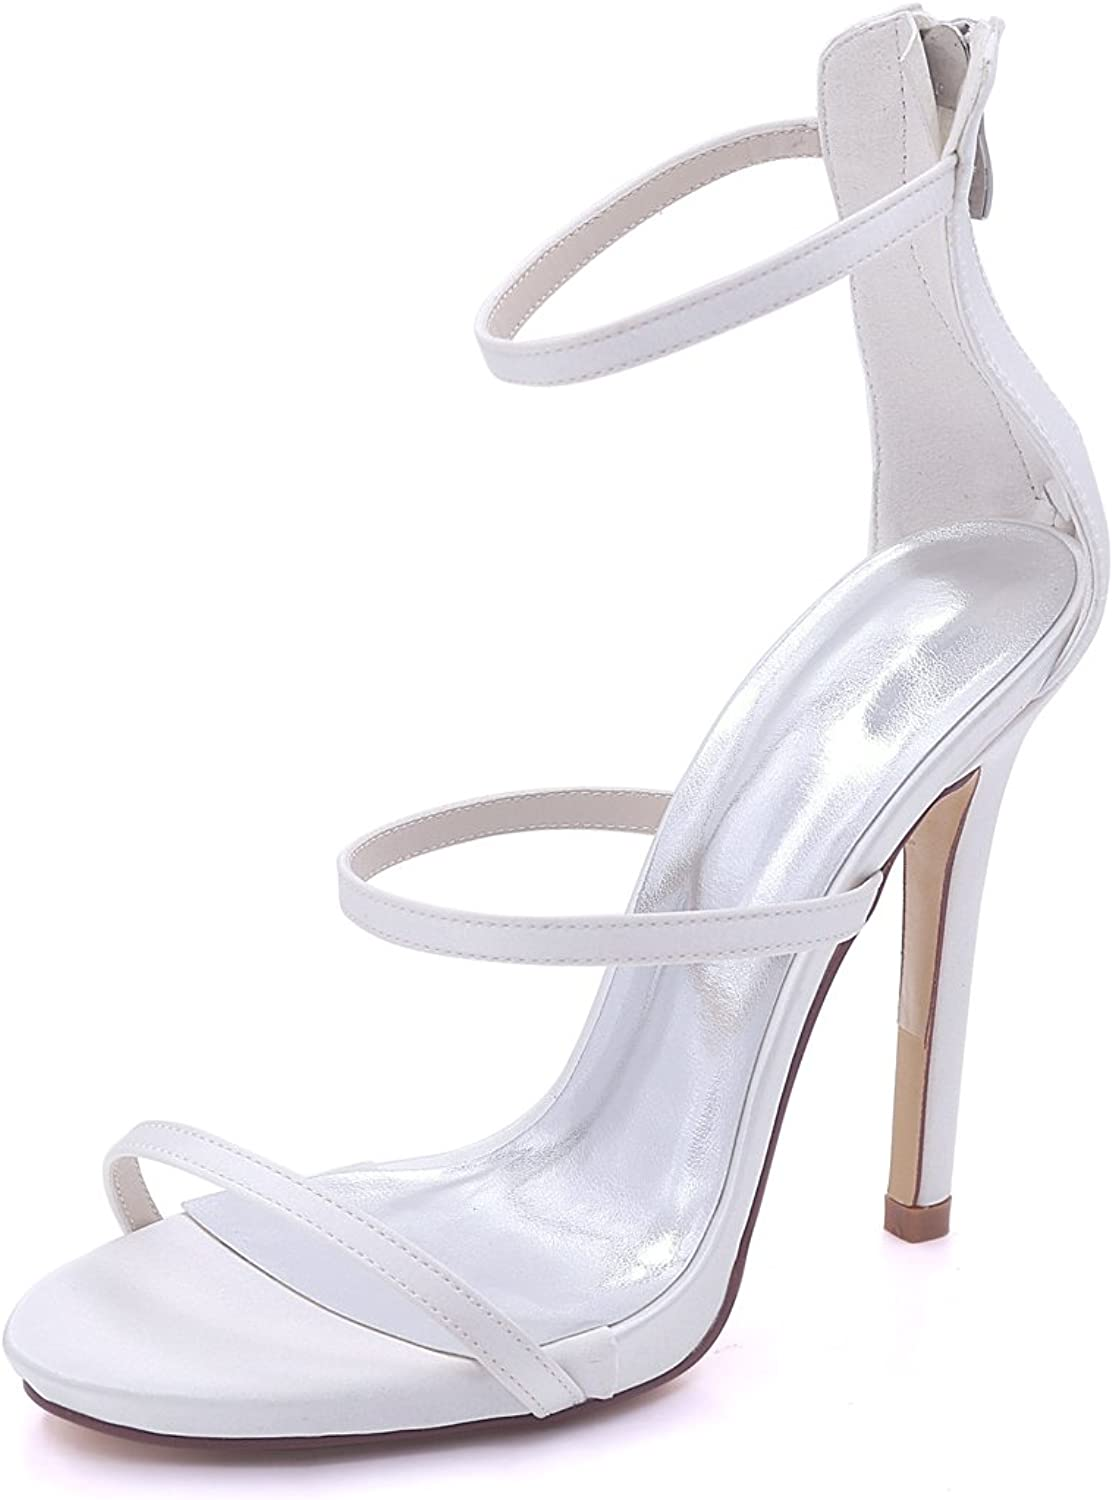 Hjtrust Women's shoes for Prom Evening Party Pumps Heels for Girl Wedding shoes 7216-05